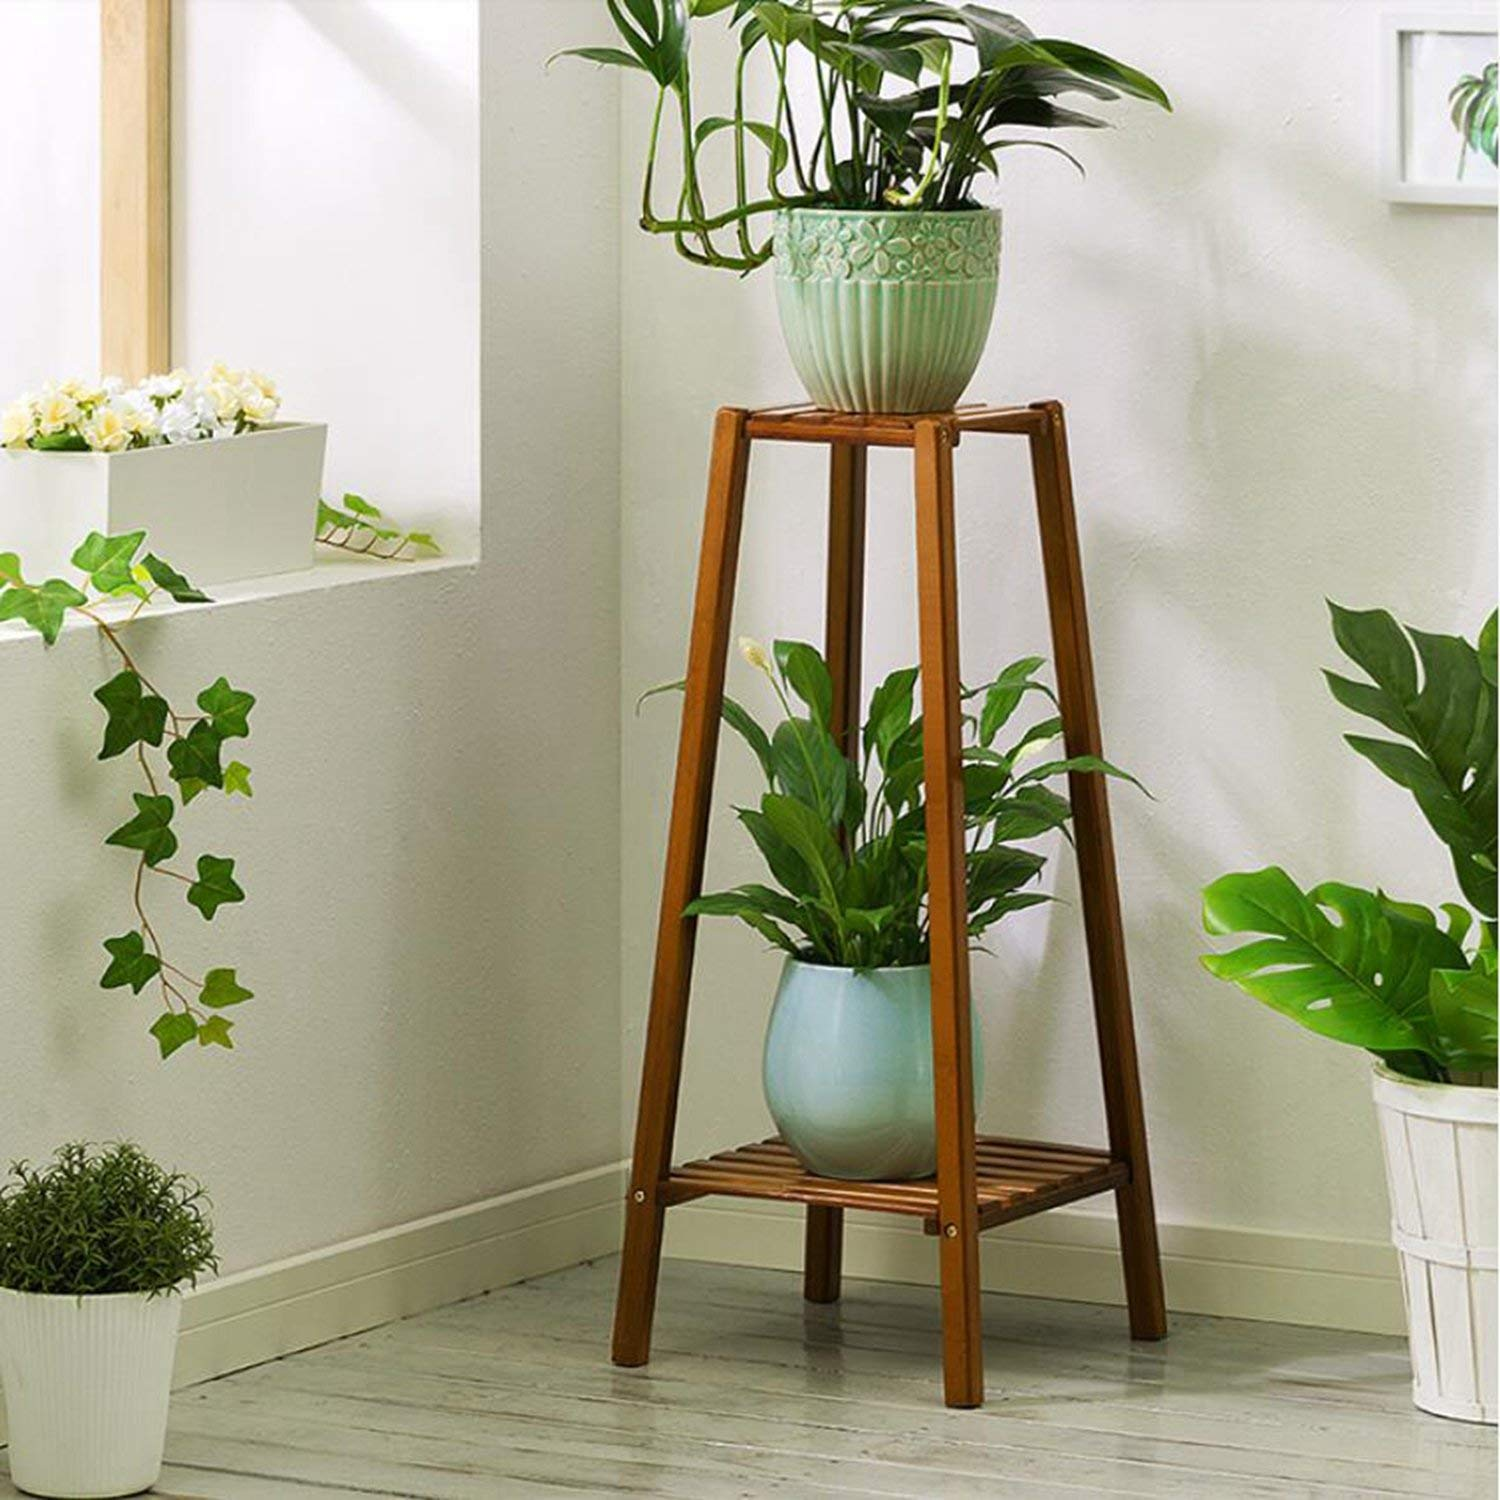 Magshion Bamboo 2 Tier Tall Plant Stand Pot Holder Small Space Table Walmart Com Walmart Com